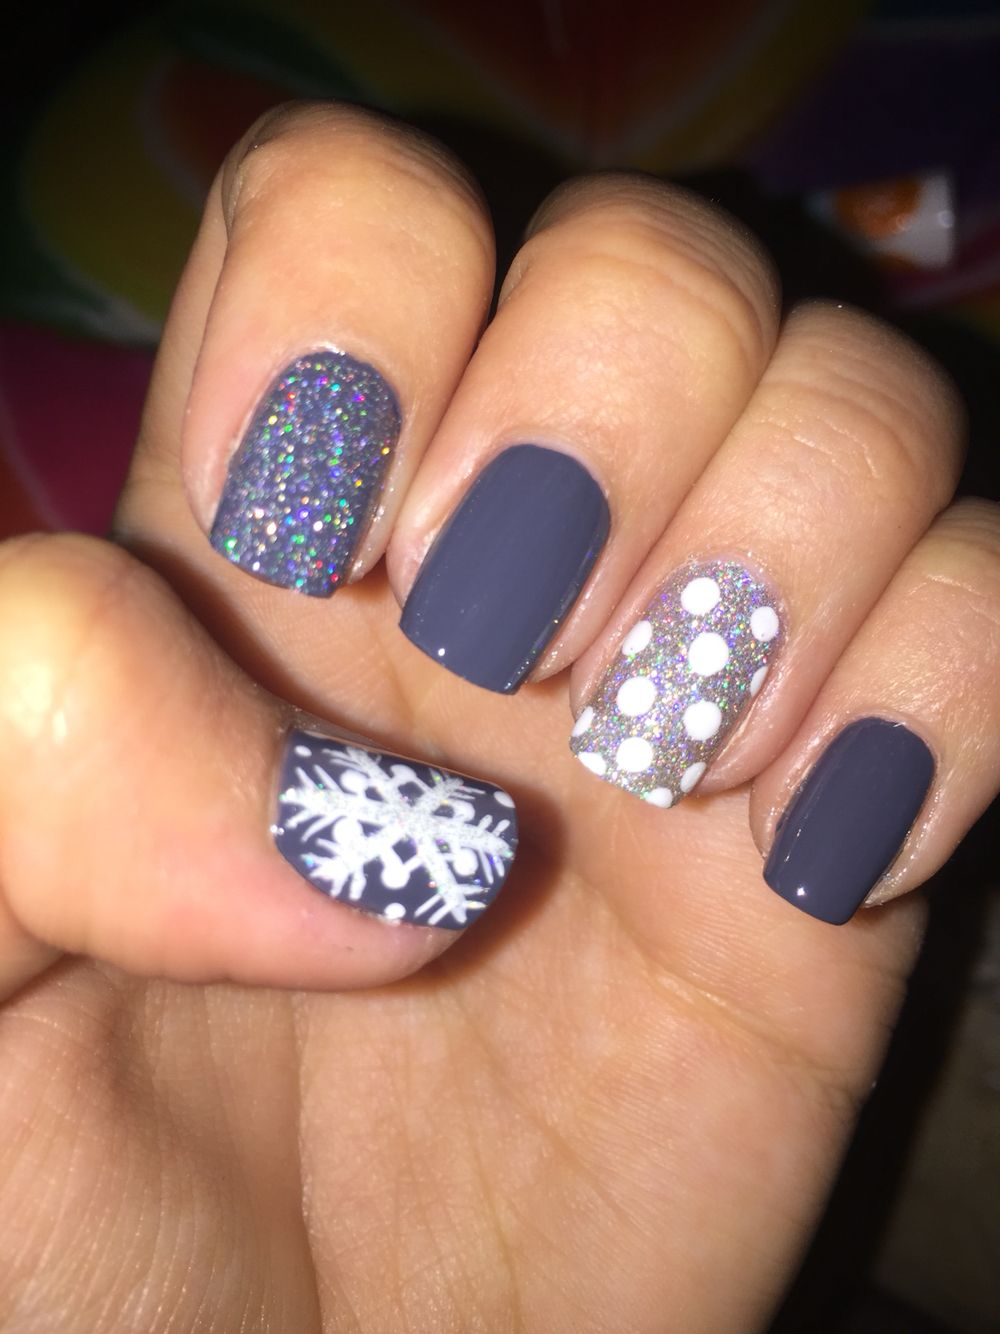 Christmas Gel Nails Done By Yours Truly